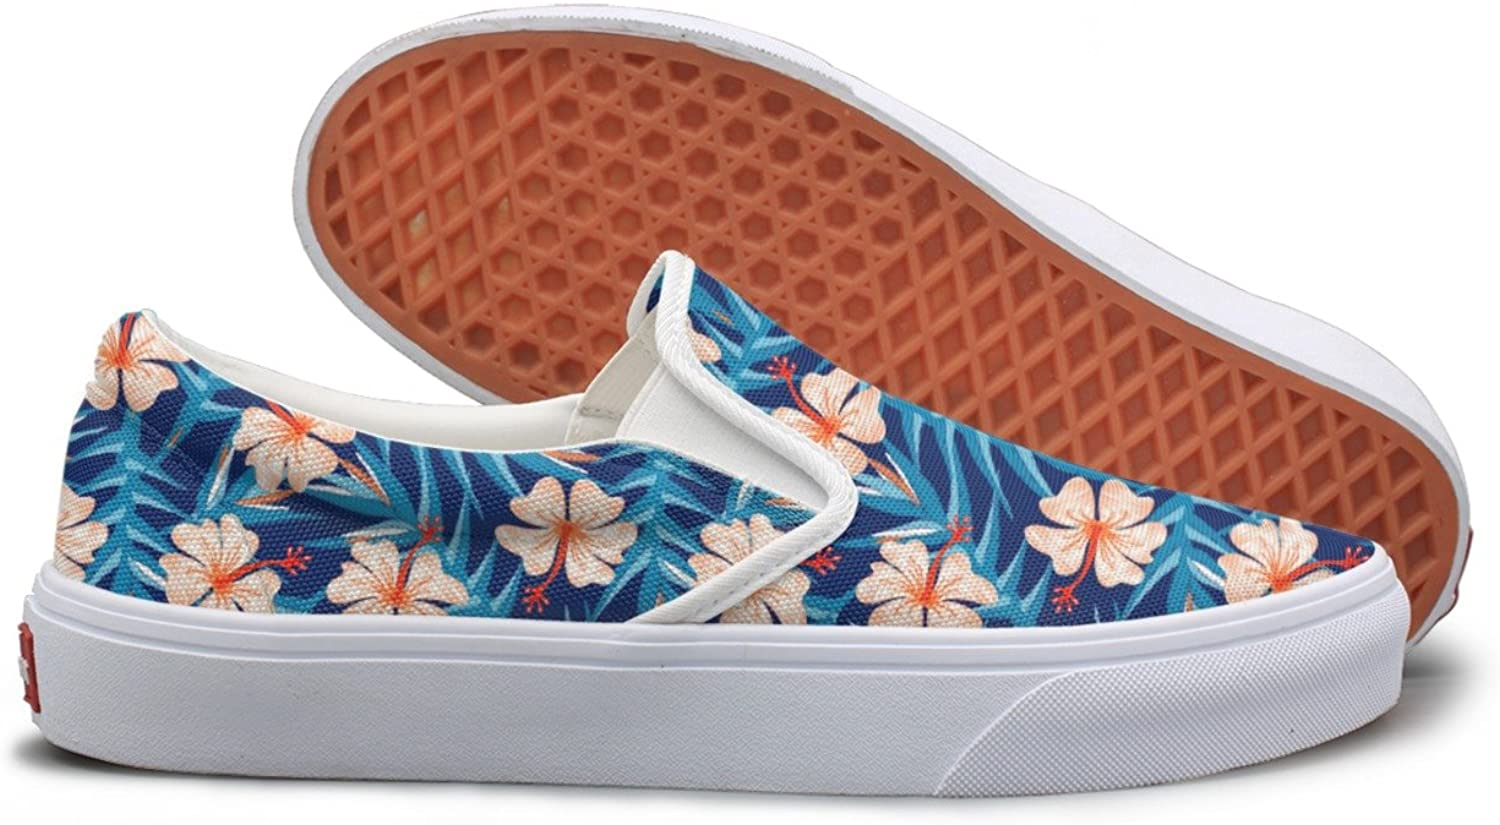 Tropical Ginger Embroidery Floral Comfortable Sneakers For Standing All Day